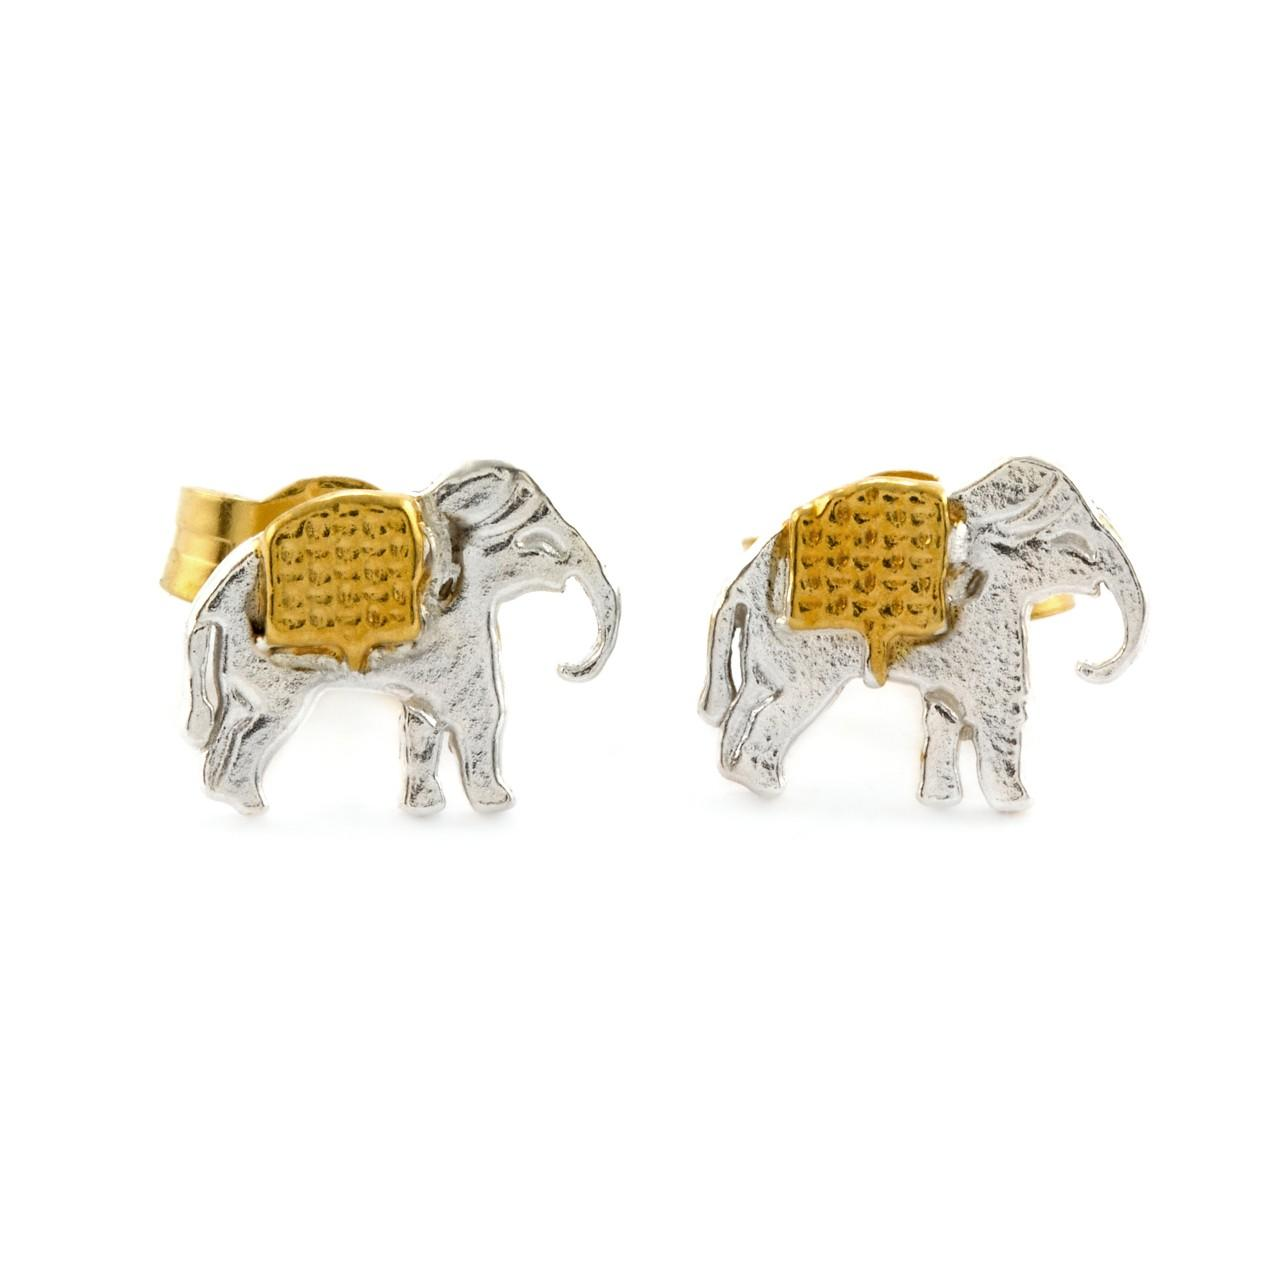 Silver and gold plated marching elephants stud earrings £108 (available in store only)